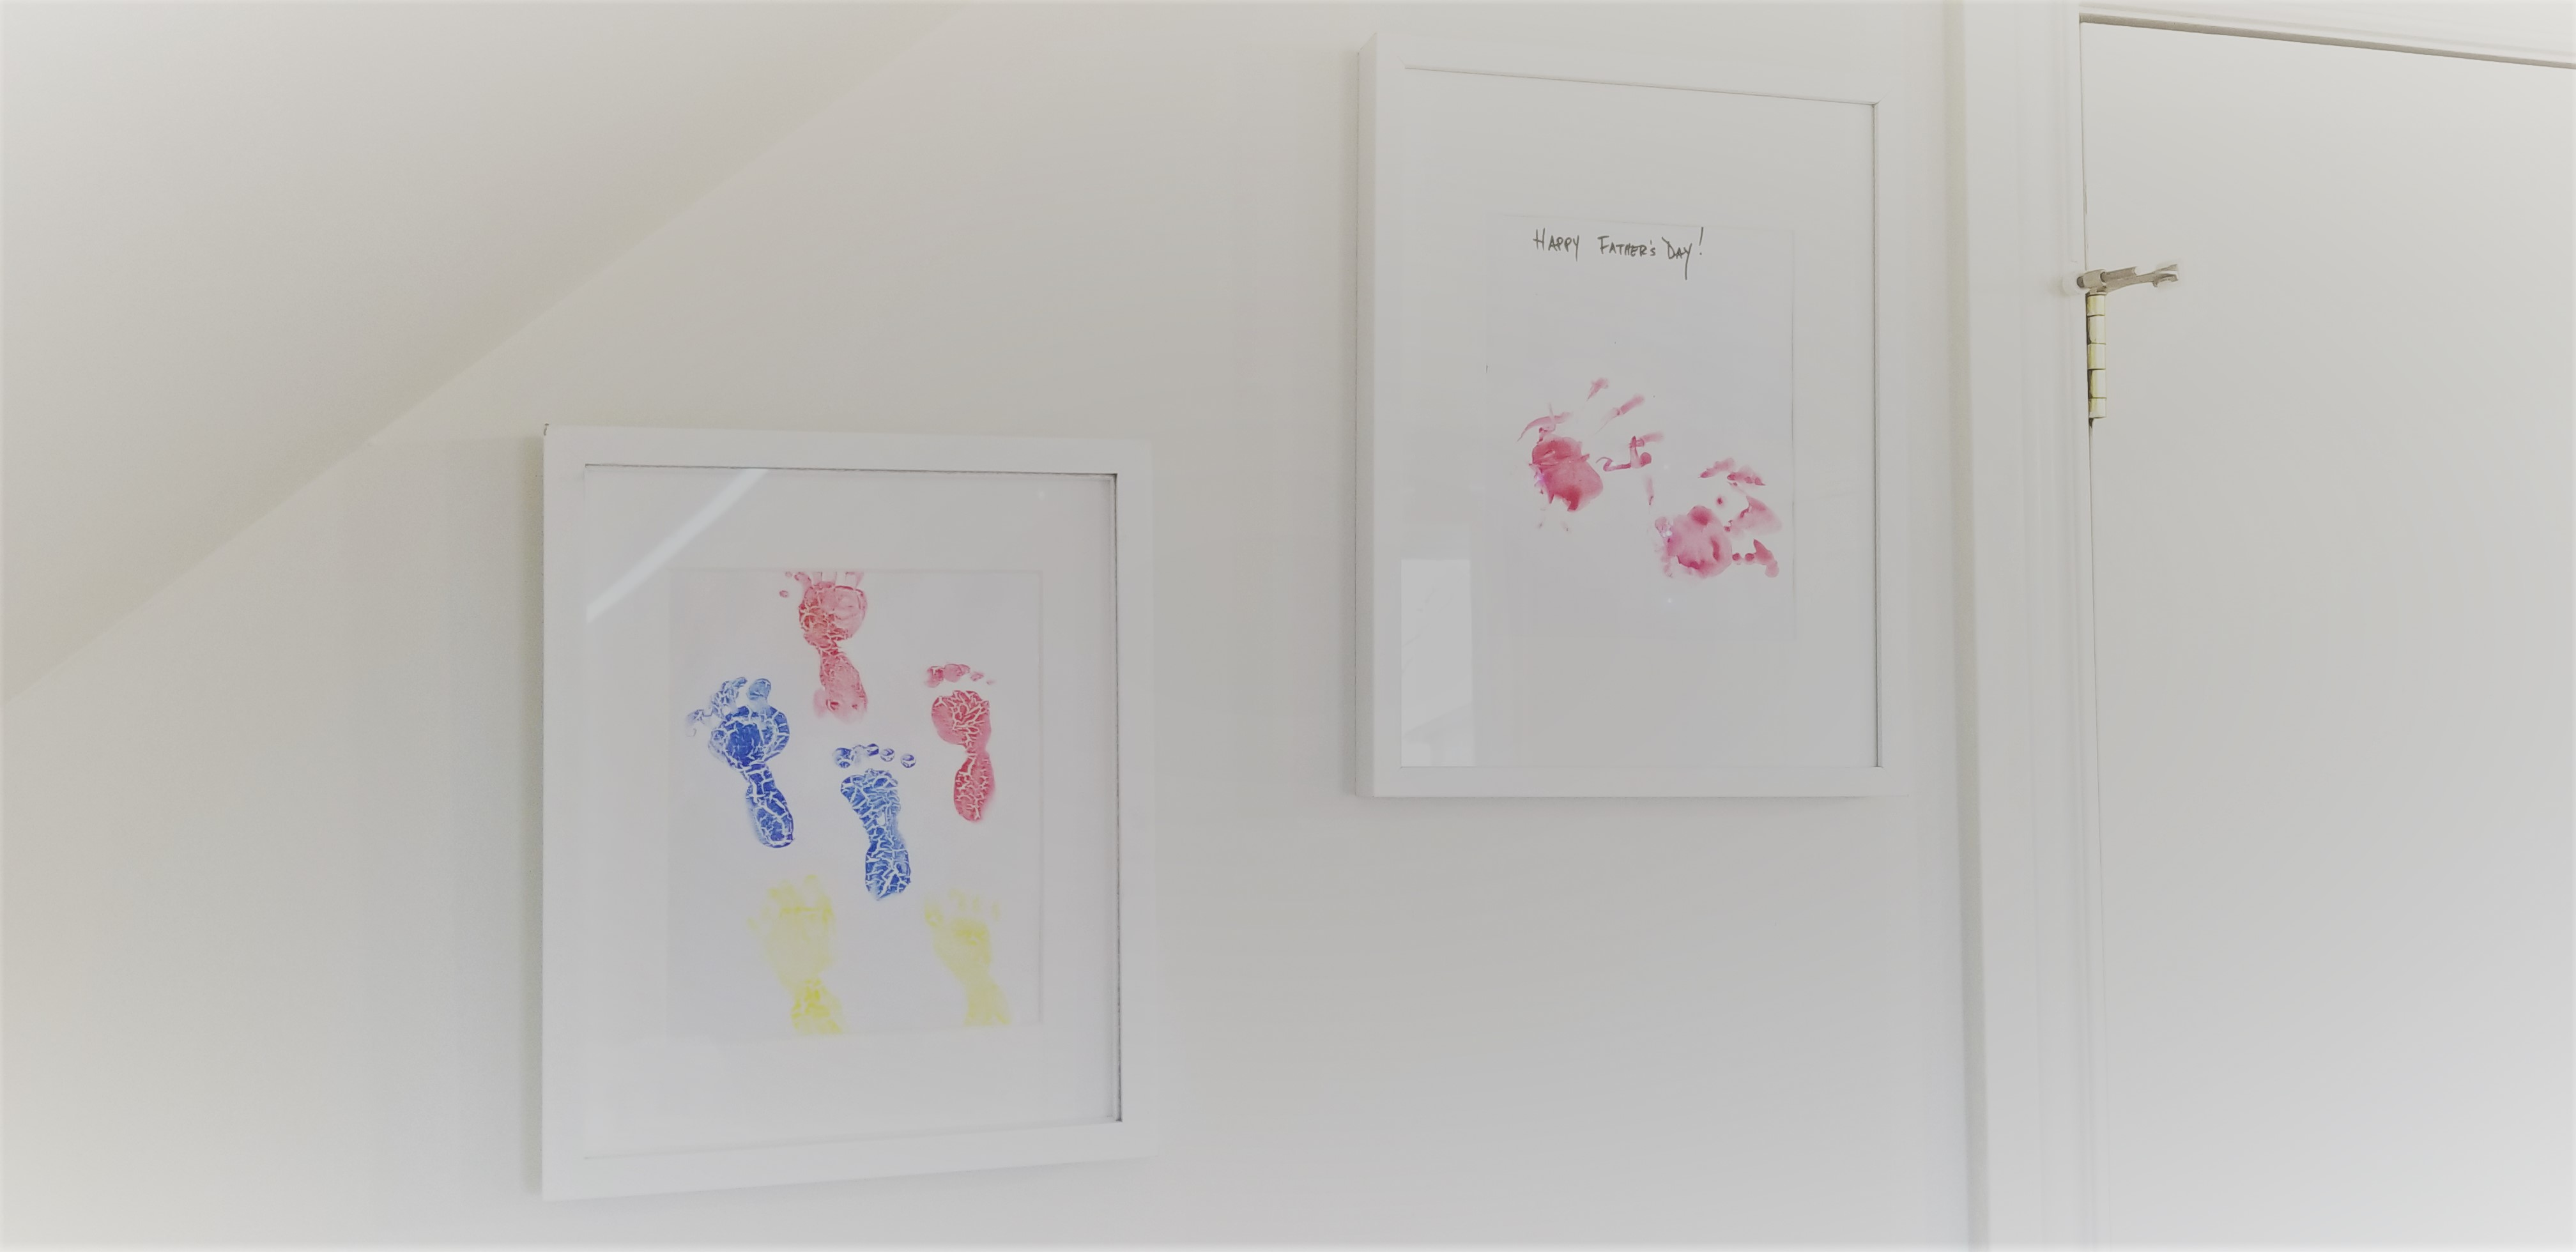 8hand-foot print paintings.jpg